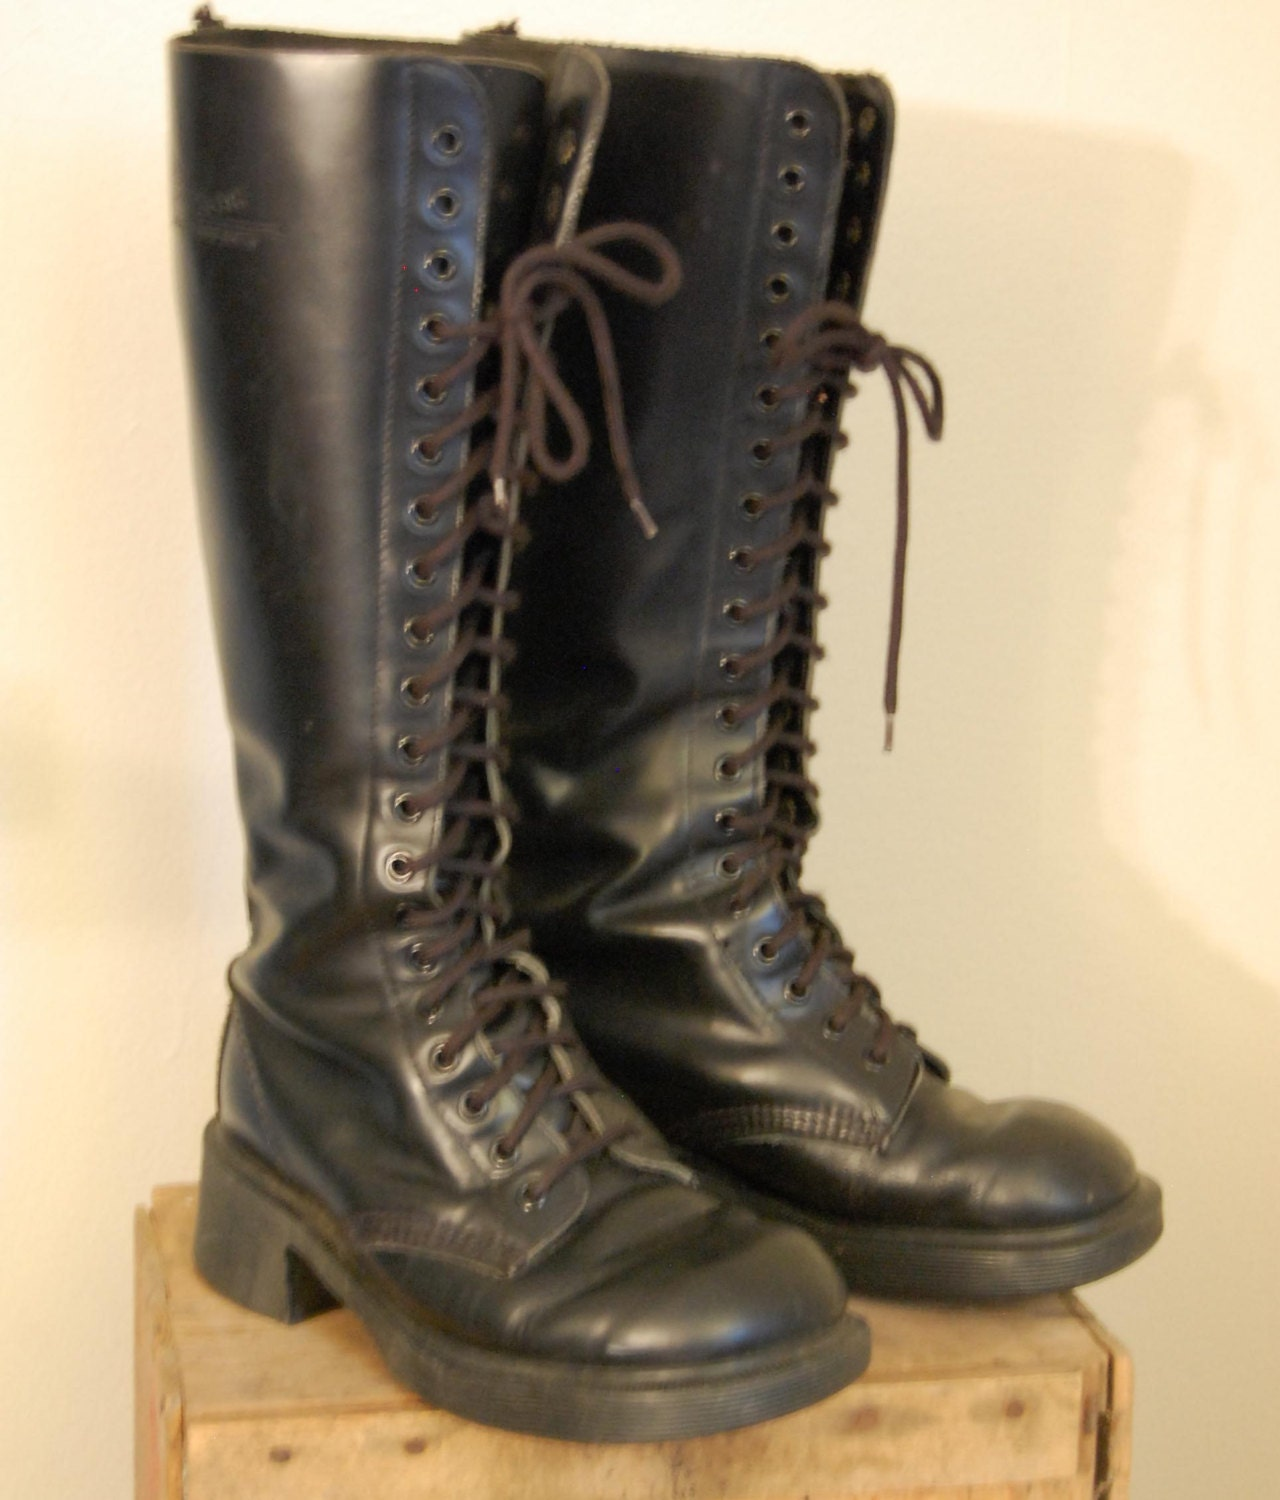 doc martens 20 eye black leather boots by perfectlyxdreadful